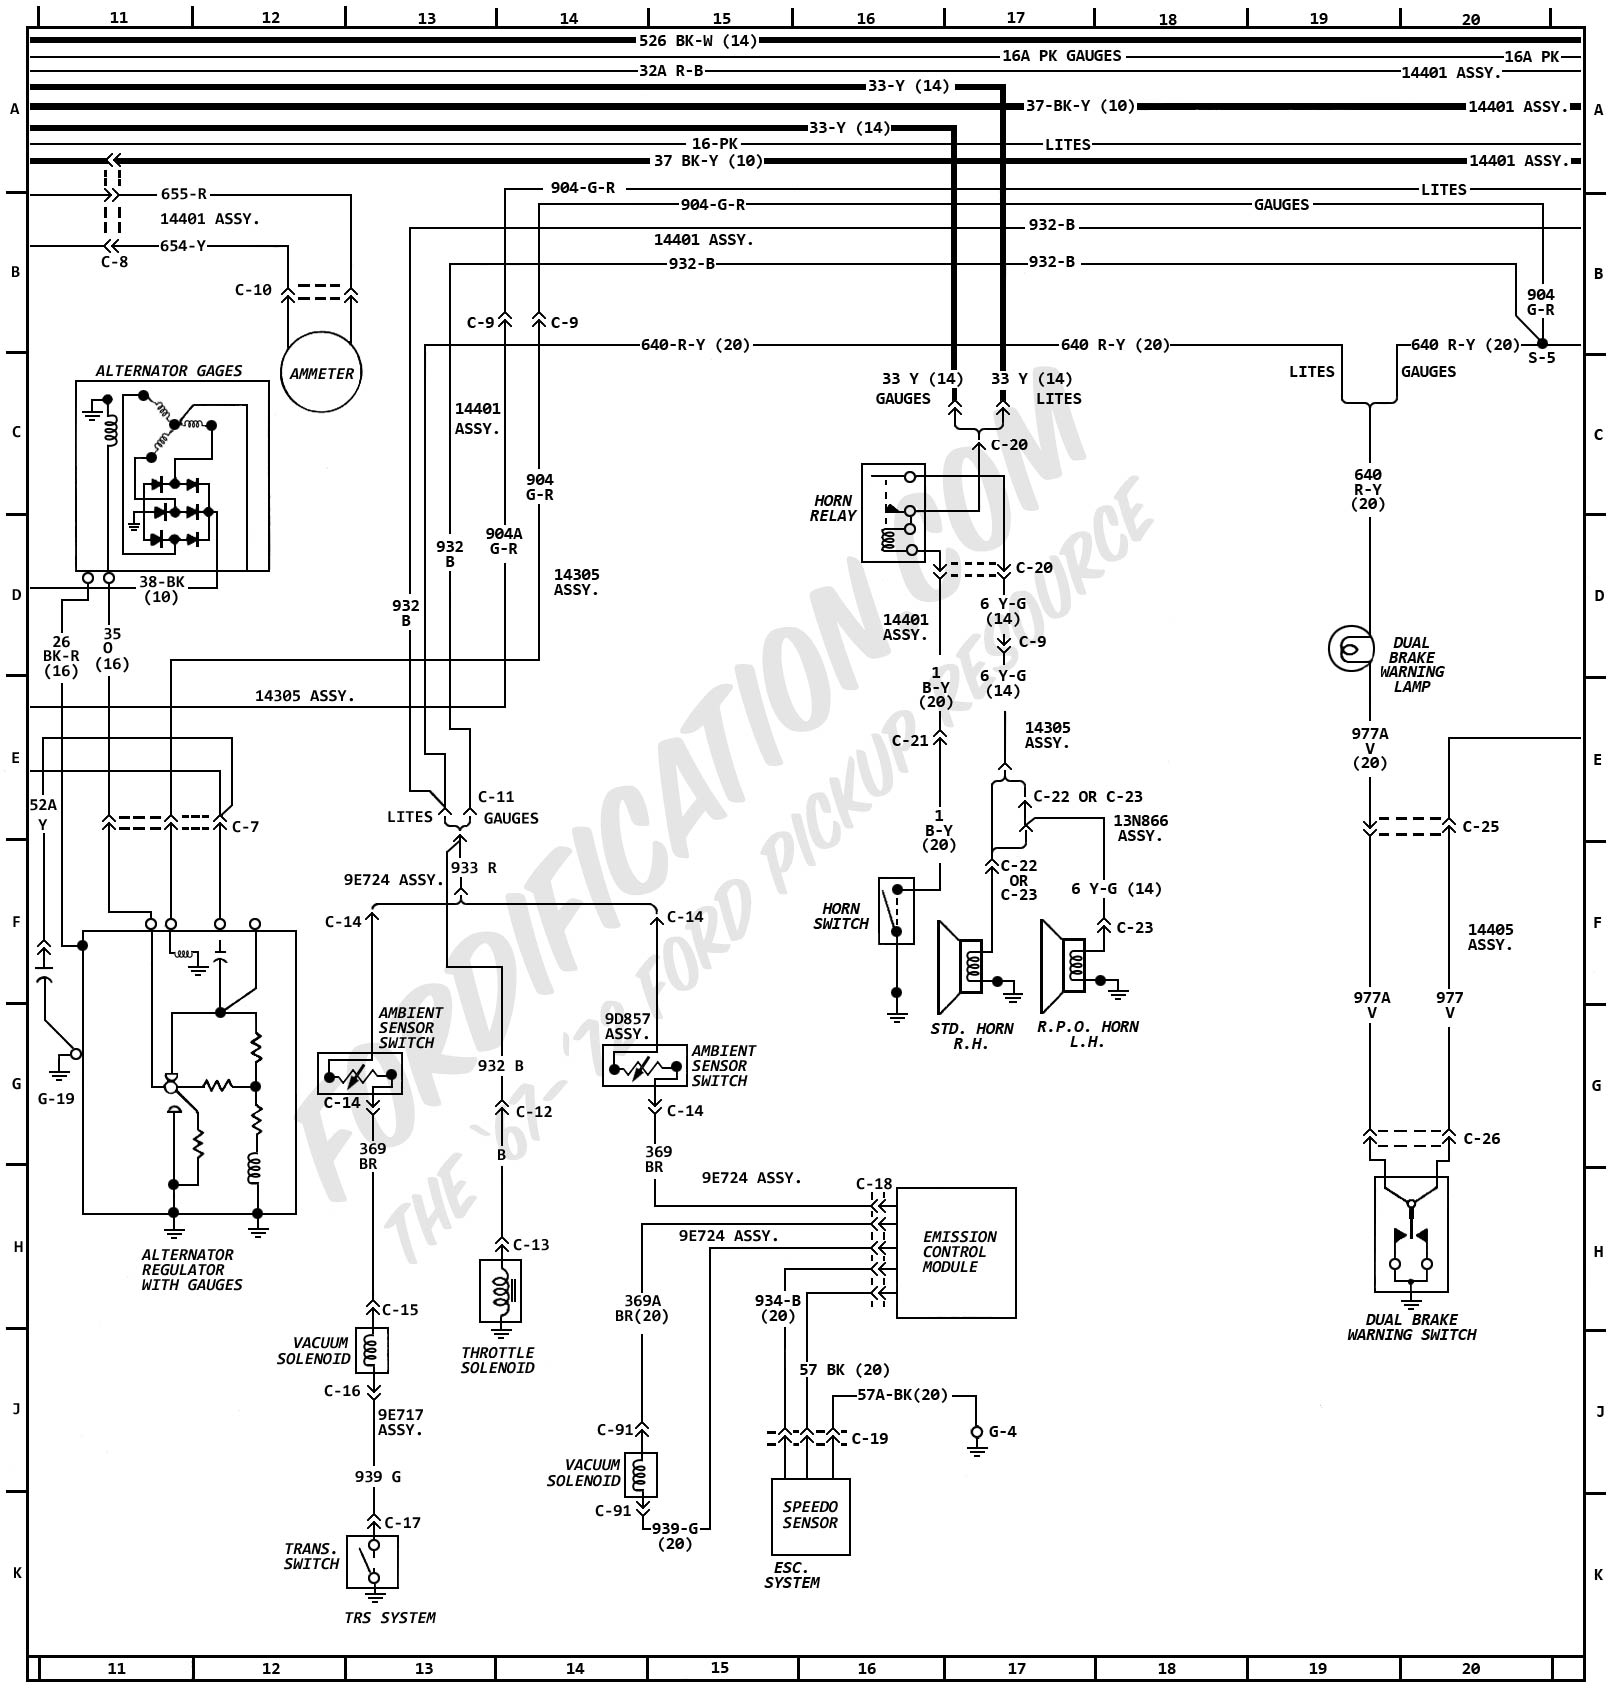 1972 ford truck wiring diagrams fordification com rh fordification com 2003 Ford Ranger Alternator Wiring Diagrams 1998 Ford Explorer Alternator Wiring Diagram